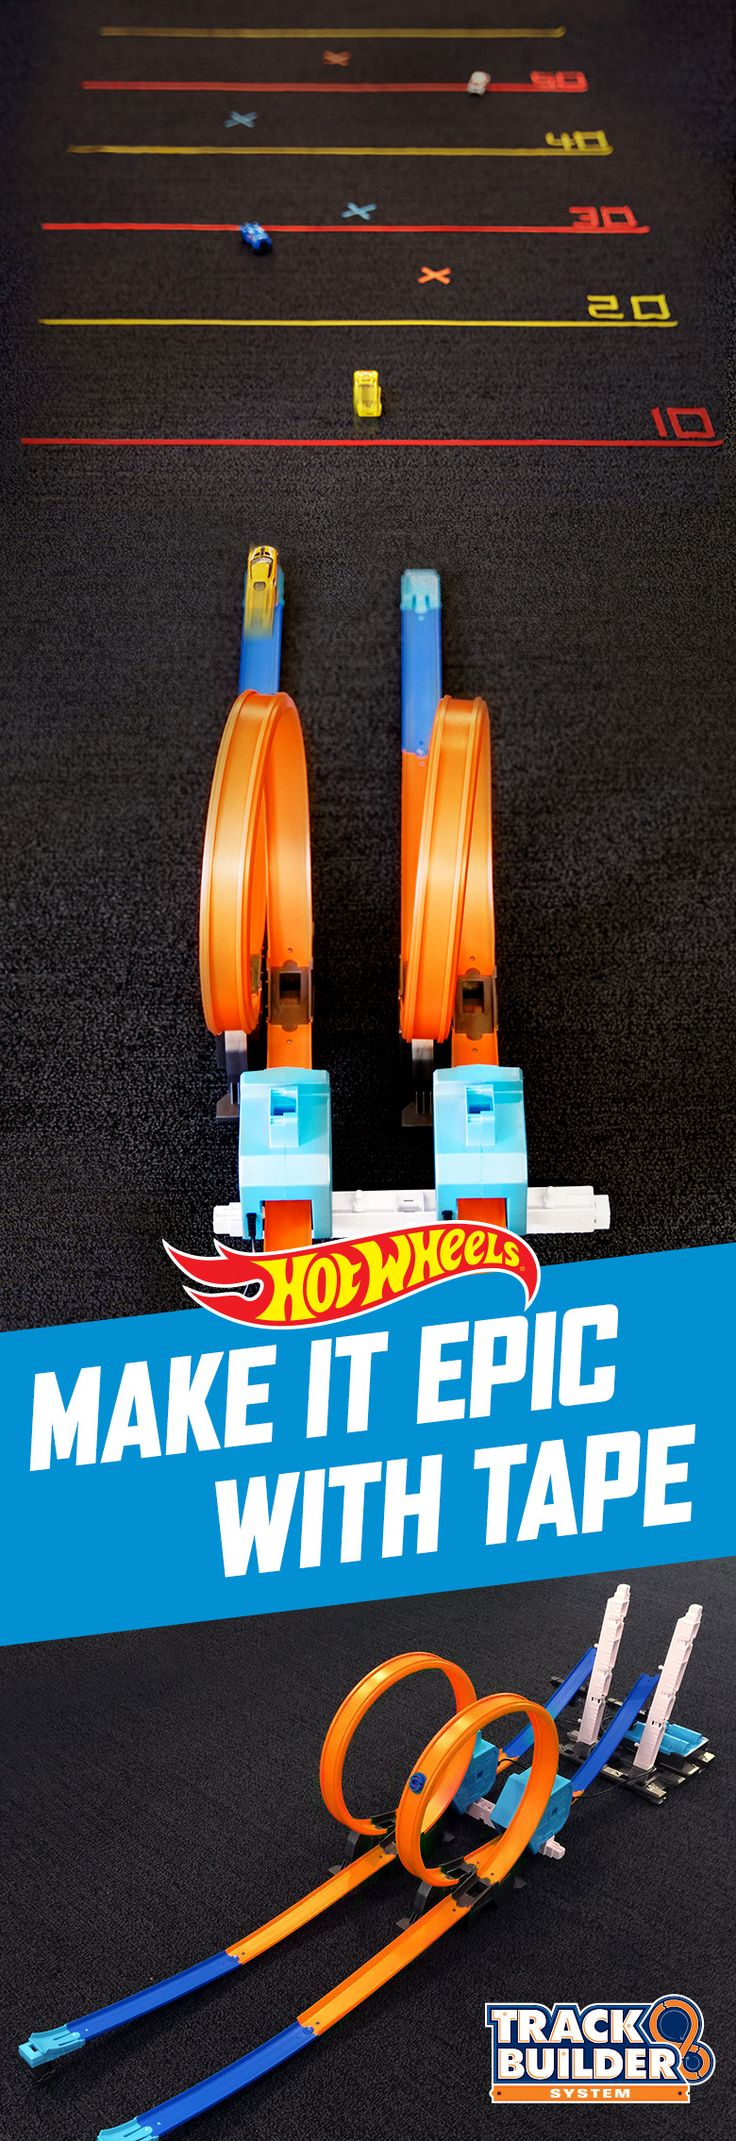 Tape takes any Hot Wheels stunt to the next level. Stick a few pieces to the floor for a DIY competition to find out who can jump the furthest. Get your kids' creativity started with a Track Builder Power Booster Kit here.